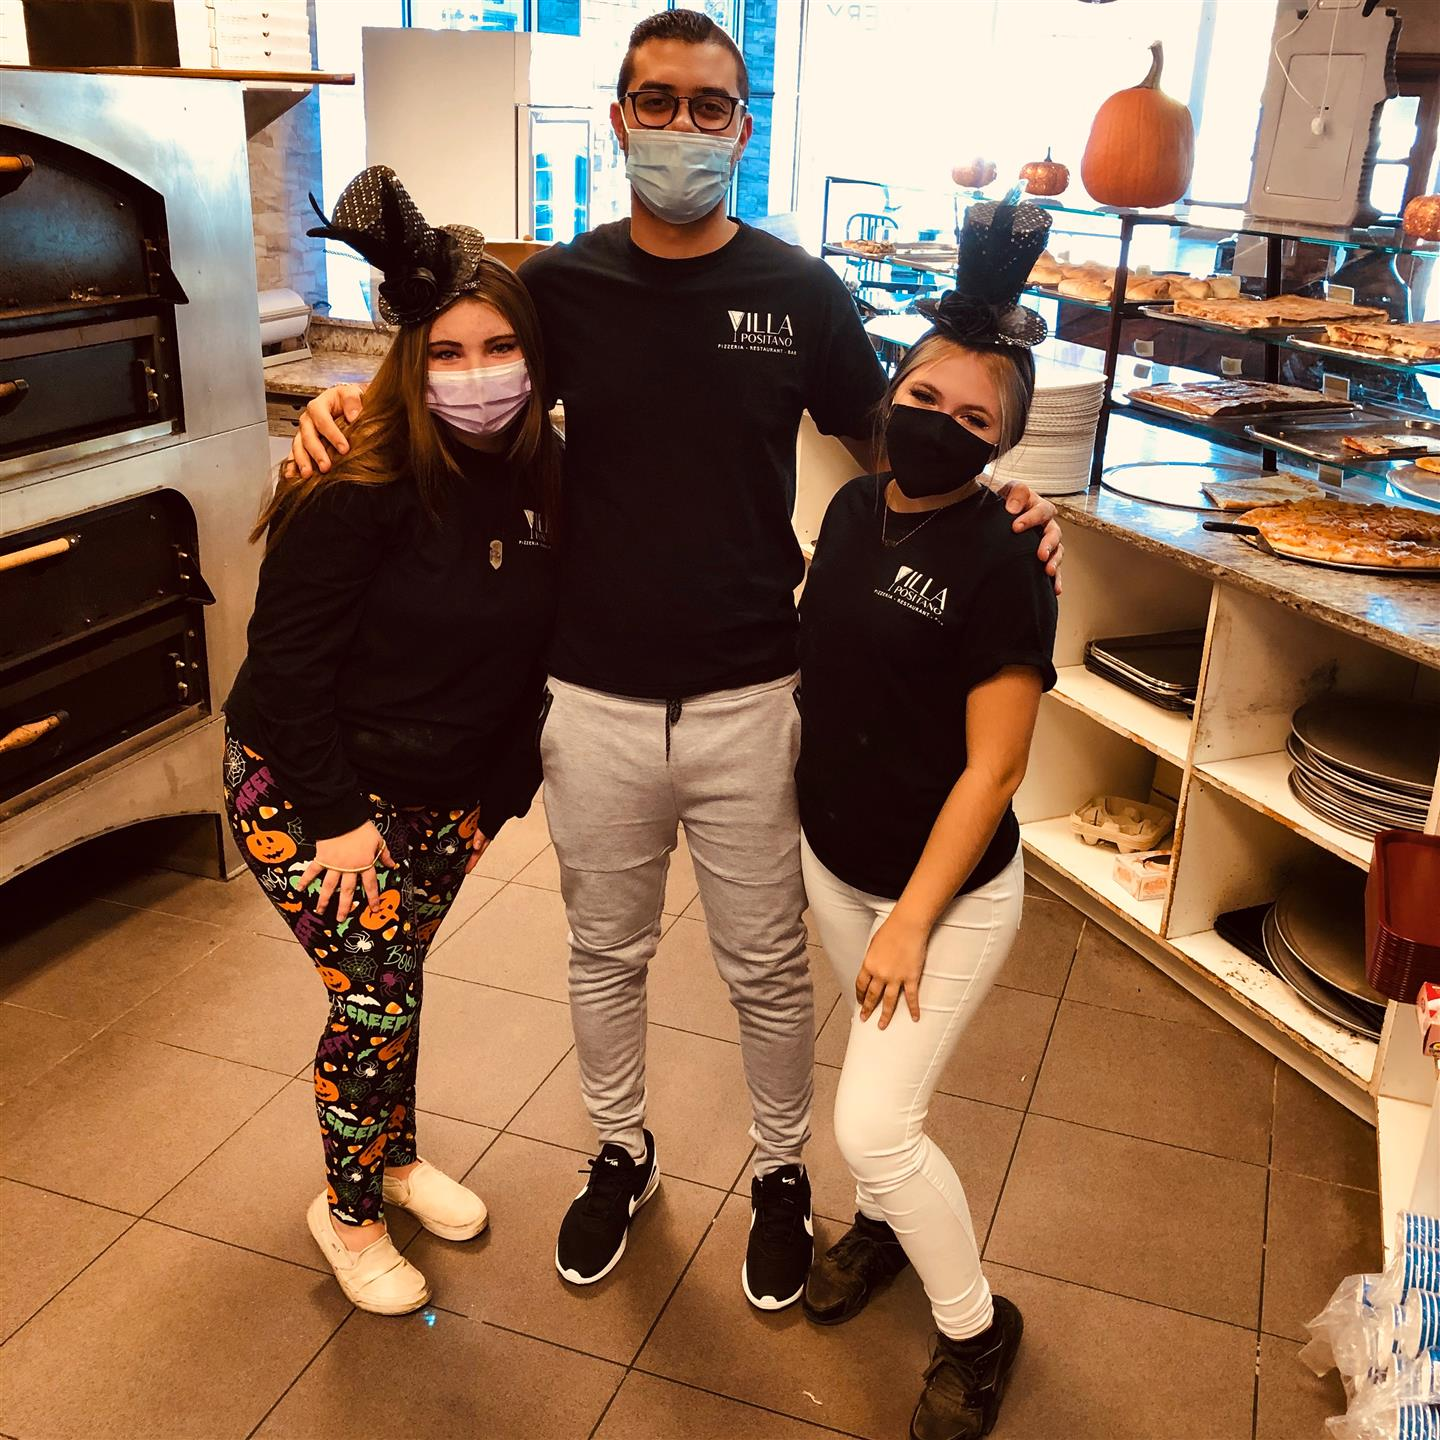 Three restaurant workers with halloween costumes